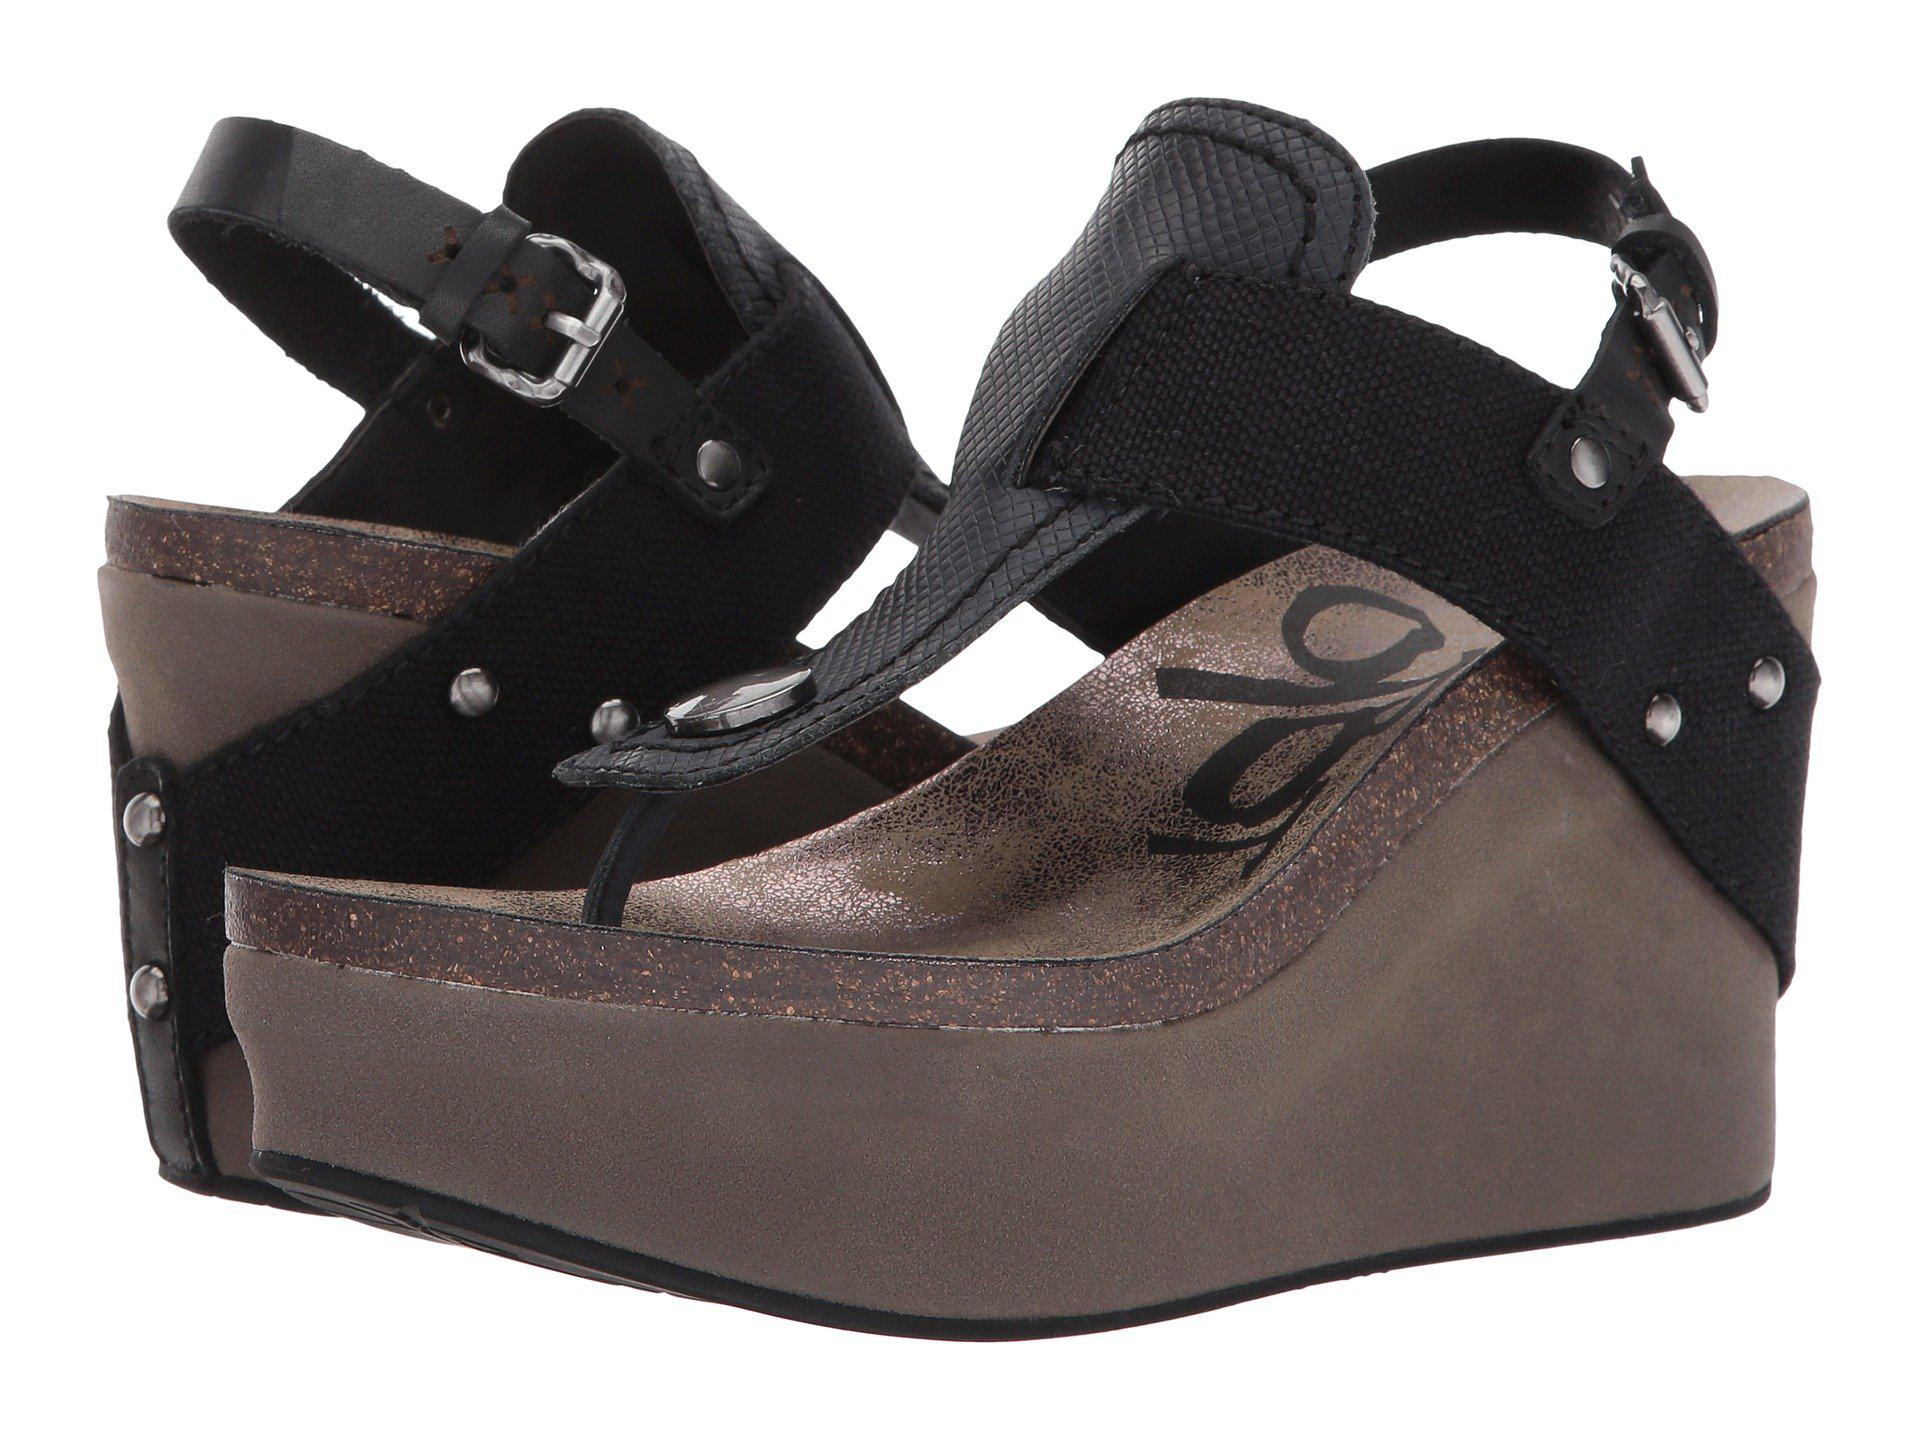 34a8a138134 Lyst - Otbt Joyride (copper) Women s Wedge Shoes in Black